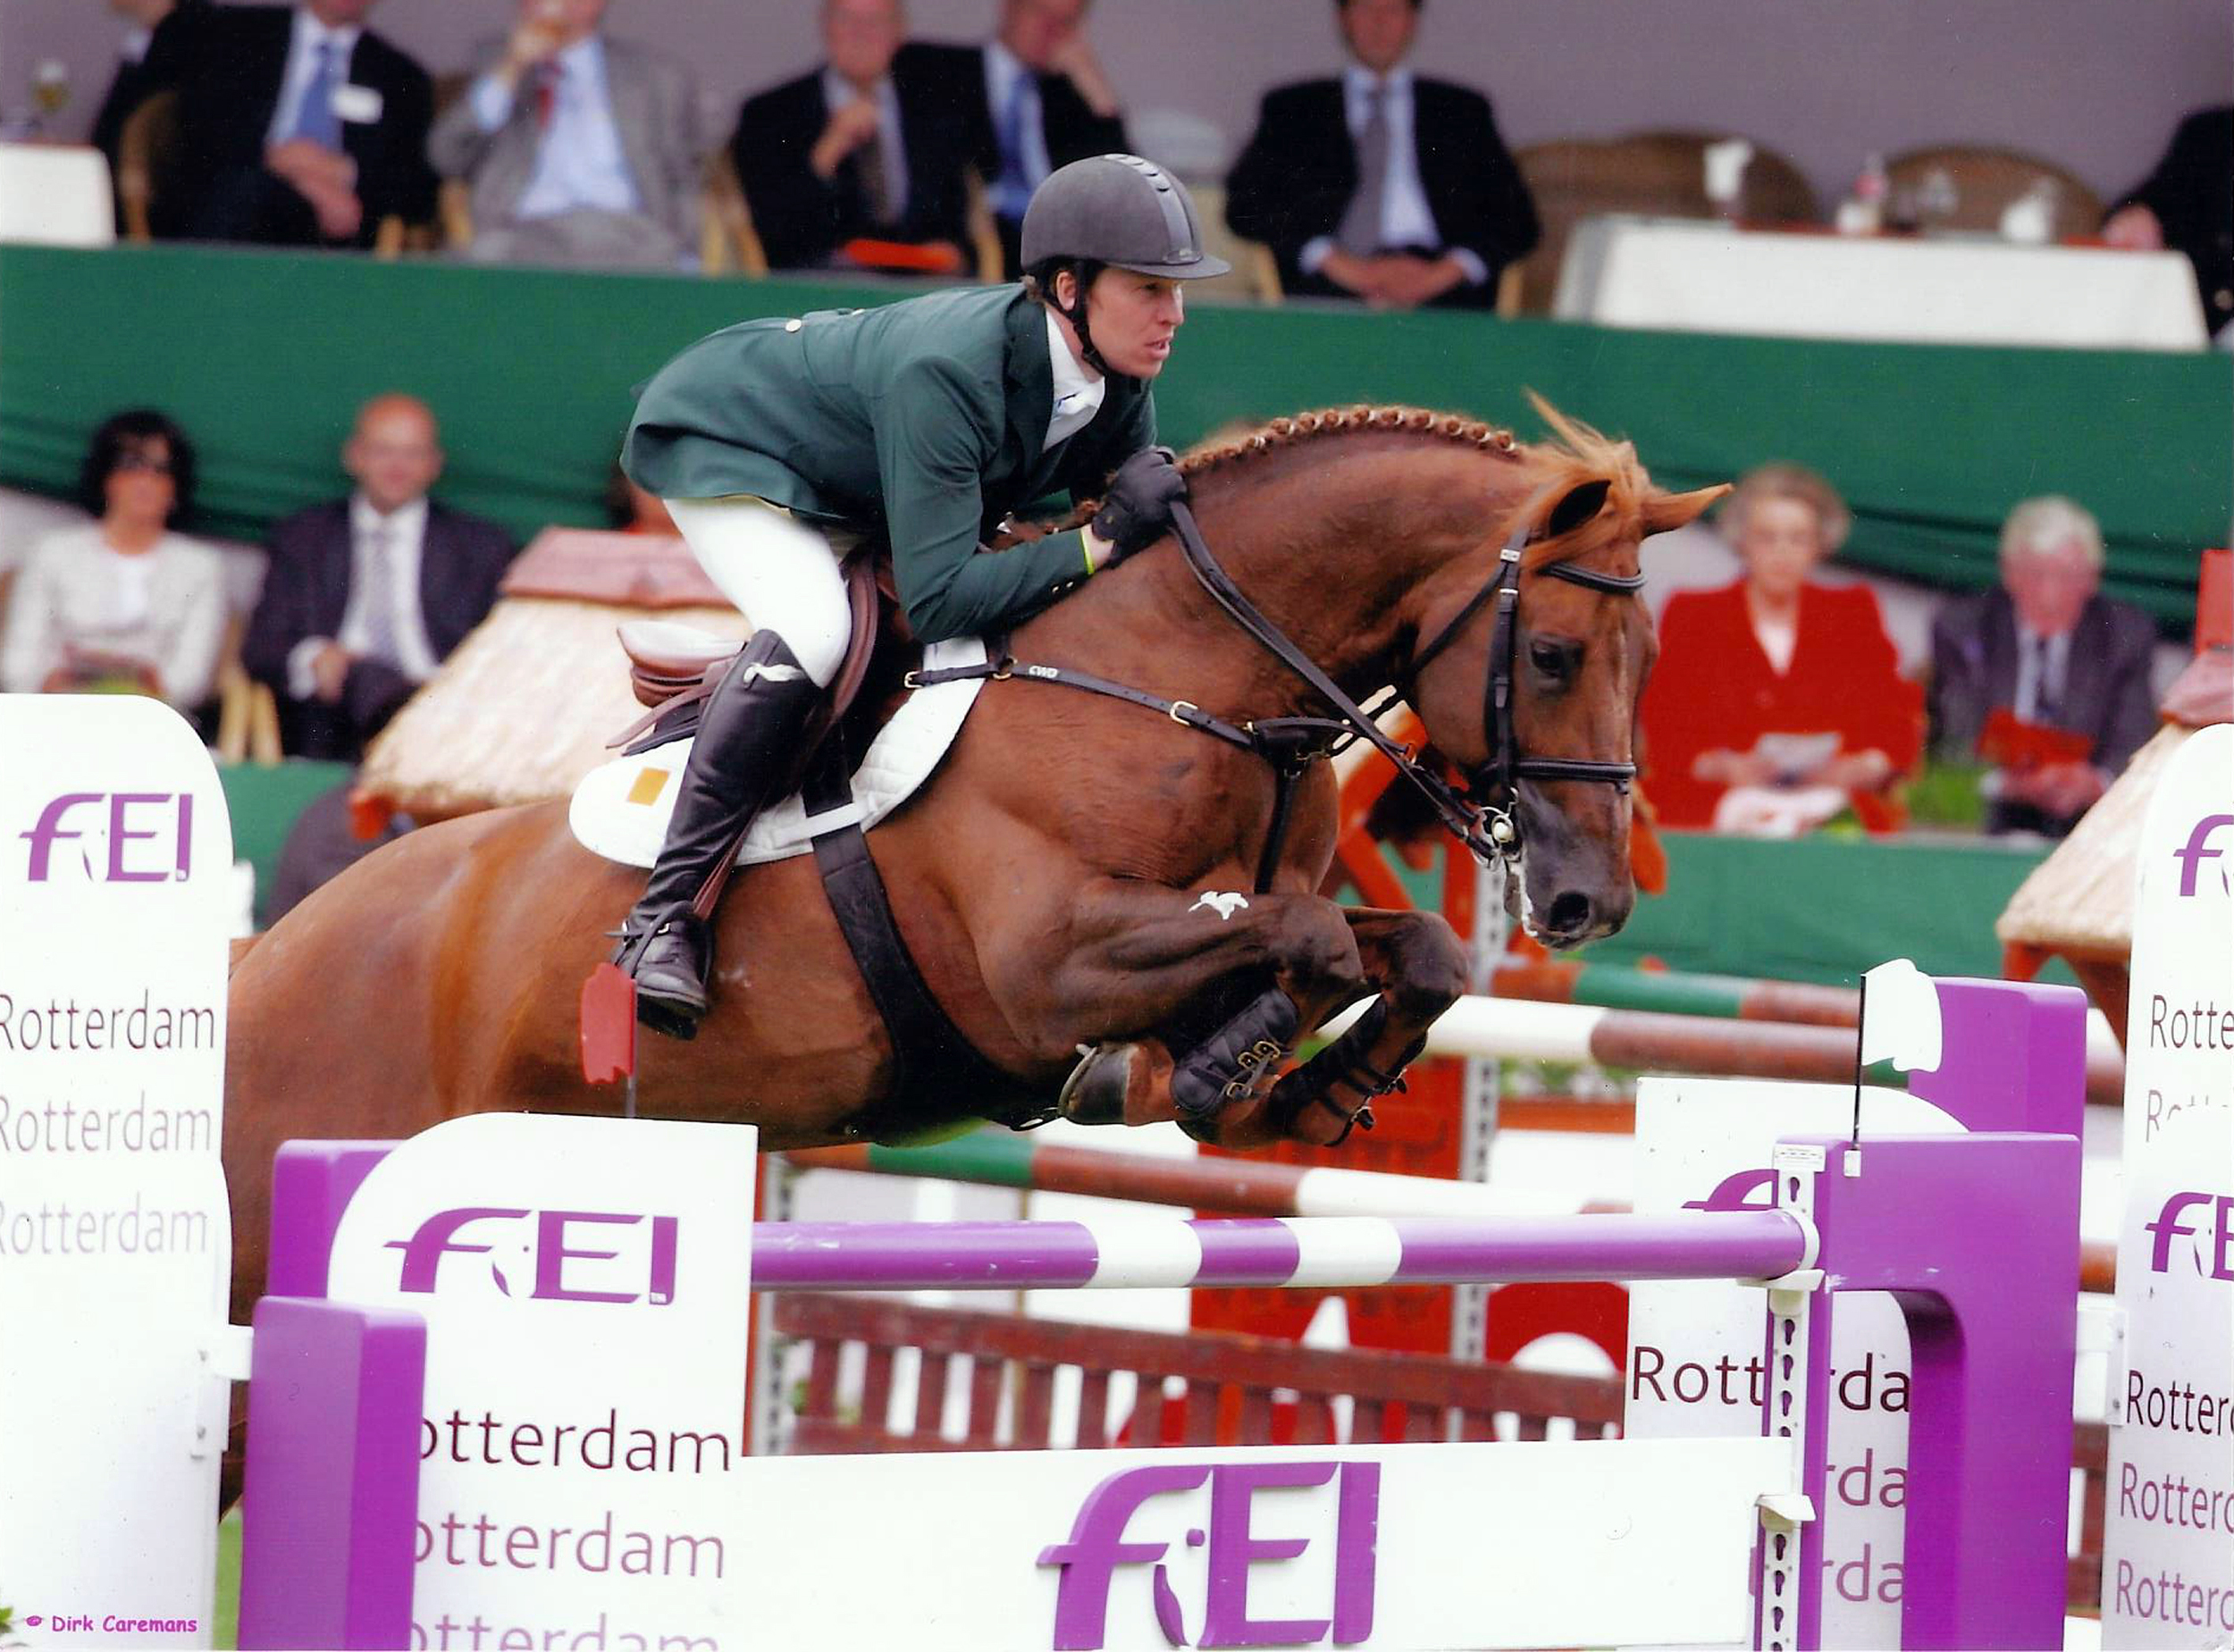 Nation's Cup, Rotterdam